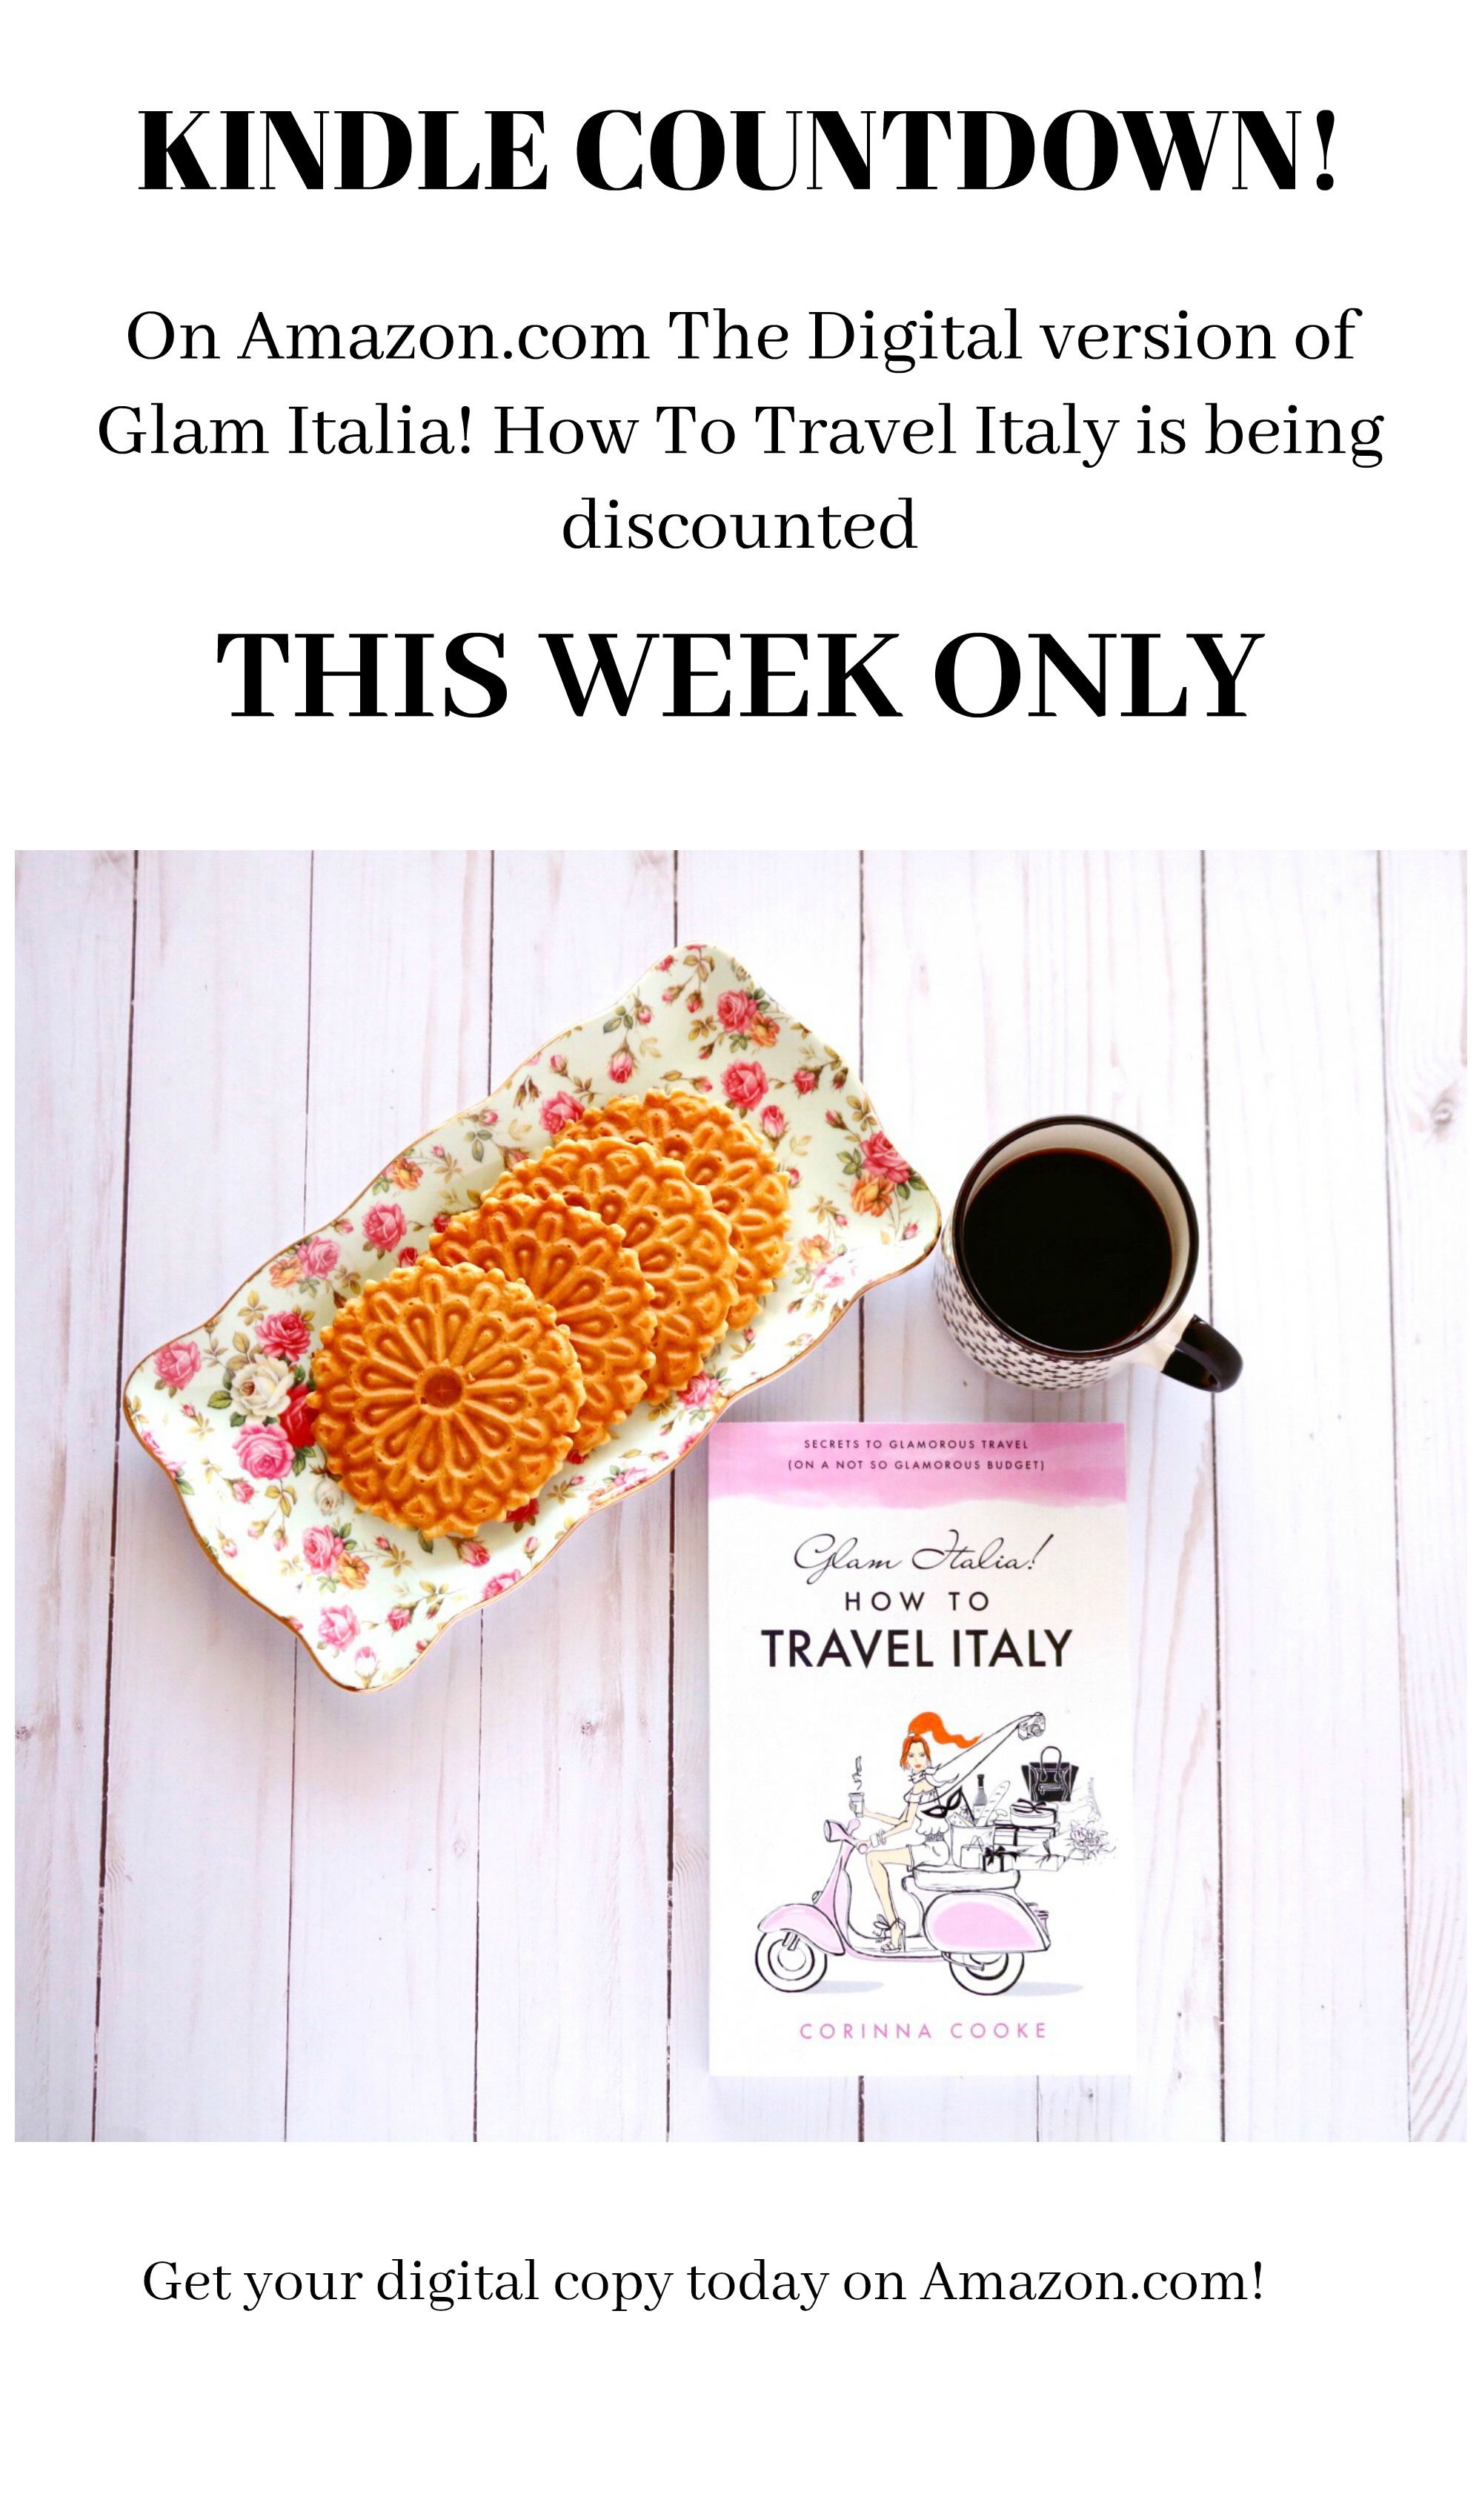 Glam Italia! How To Travel Italy is available this week on the Kindle Countdown. Starting at $1.99 it will go up in price by $1 per day until Friday. On Saturday it will be back at its normal price of $9.95. All you need to do is download the Kindle App to your smartphone or tablet and the book will automatically be stored there. You won't lose space or data on your device. Happy reading!